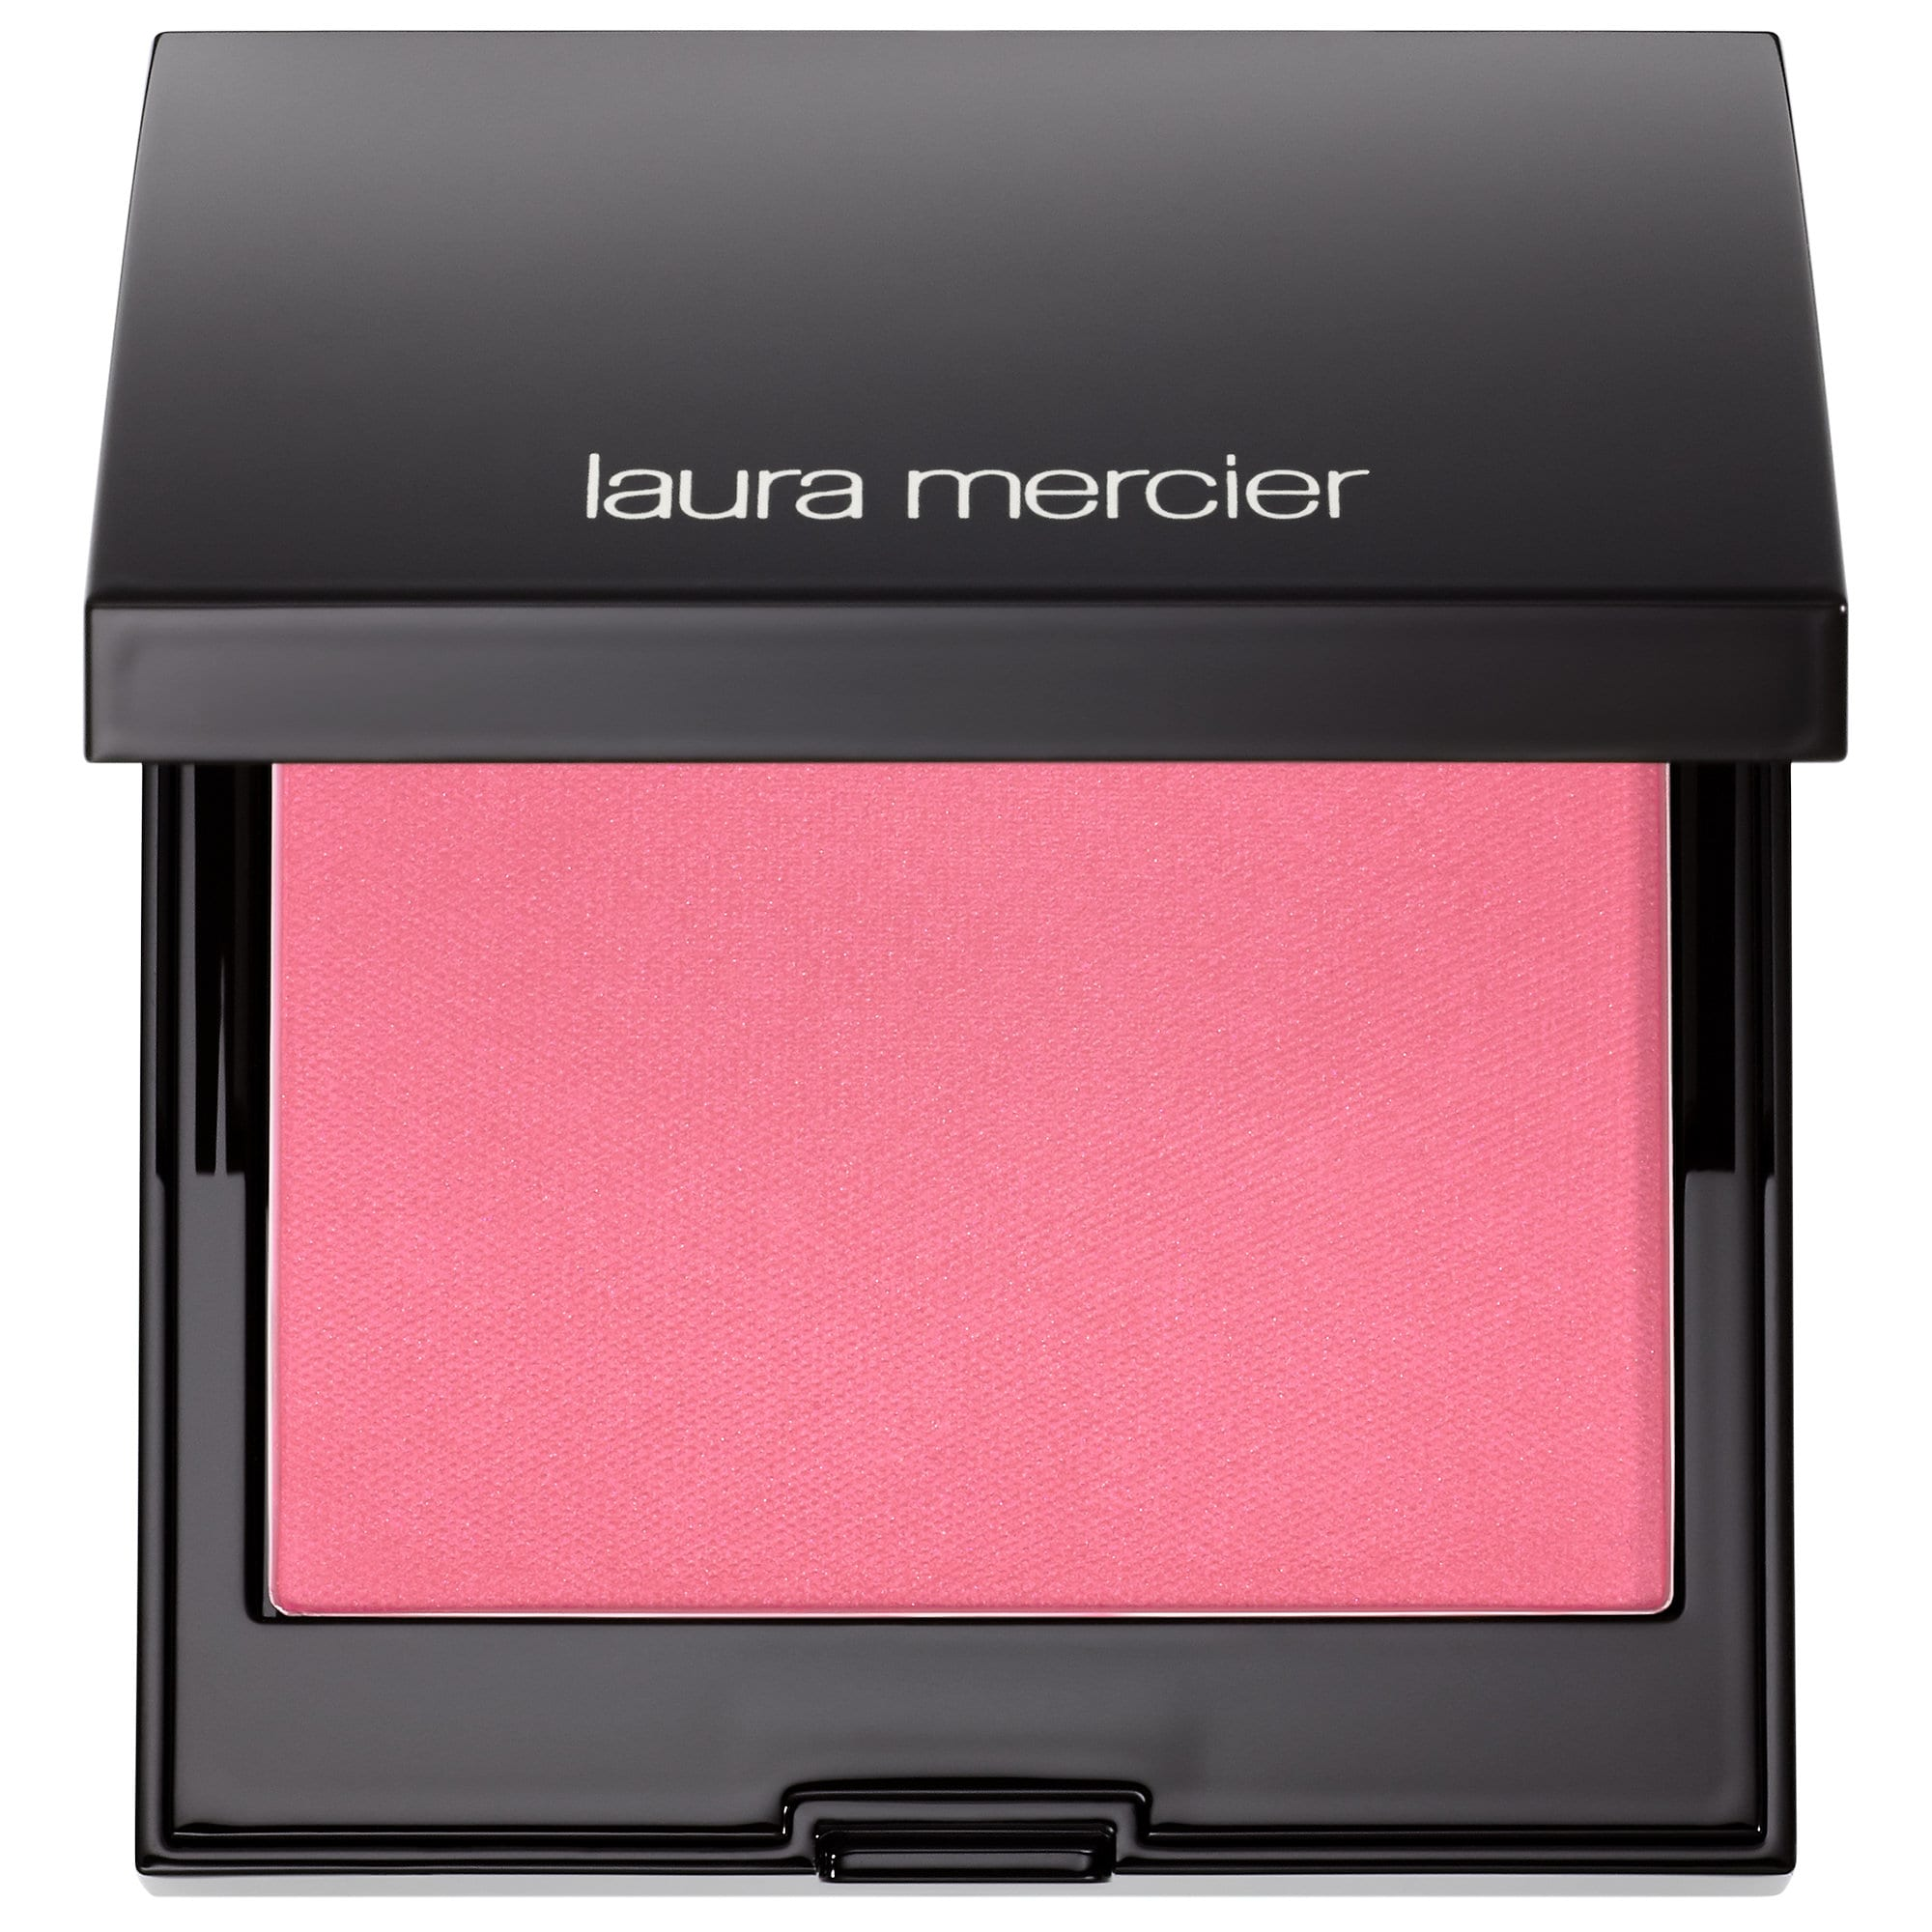 Laura Mercier Blush.jpg